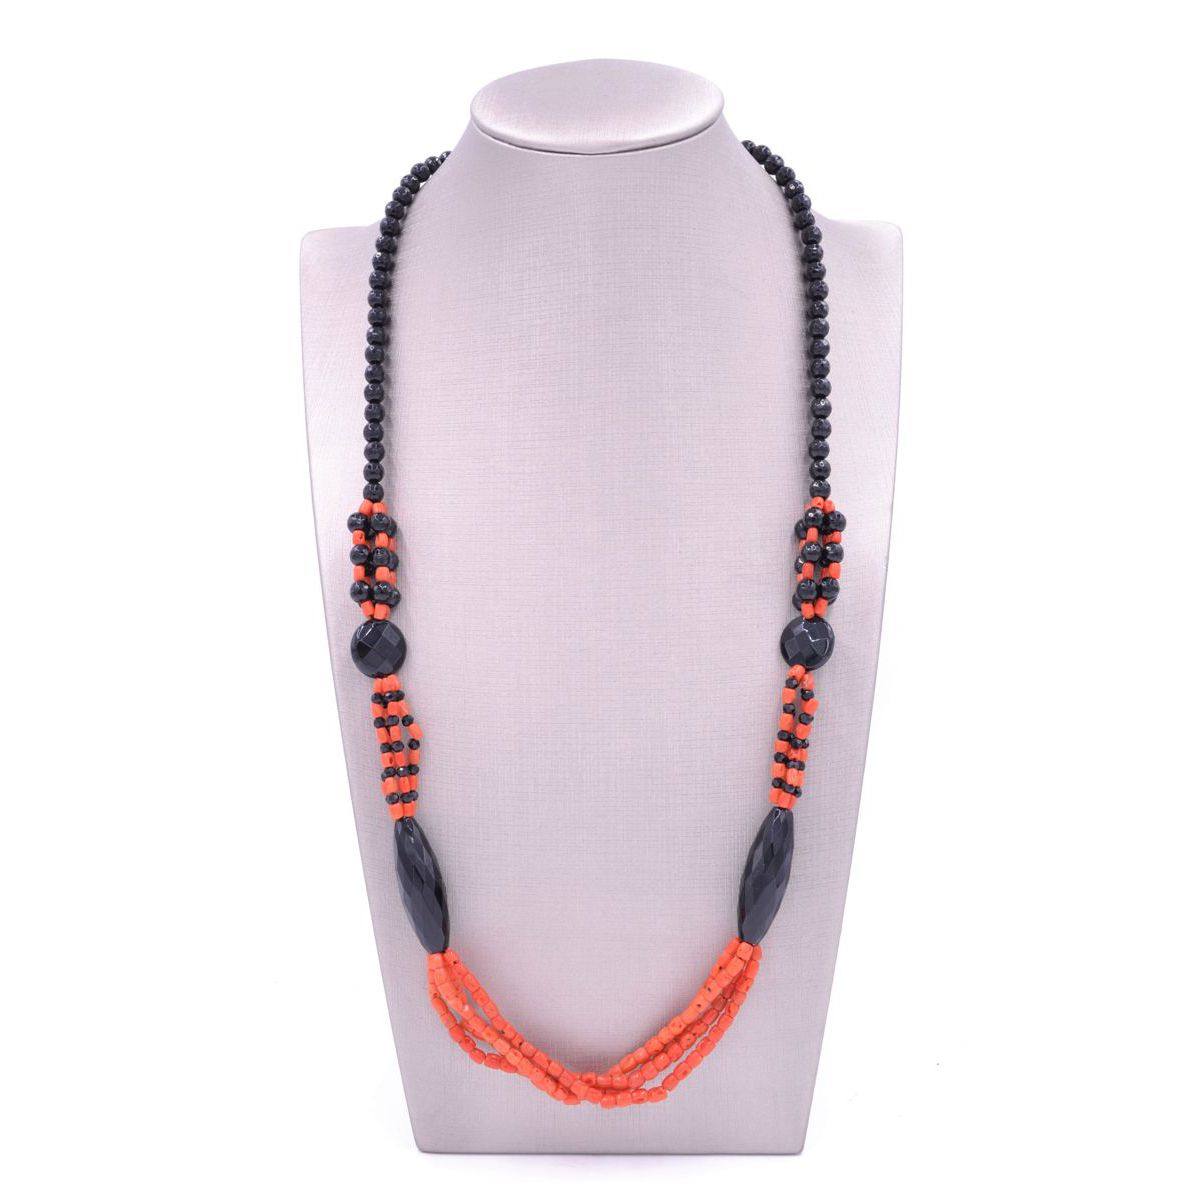 NECKLACE ONYX AND CORAL Black BRASS Selection